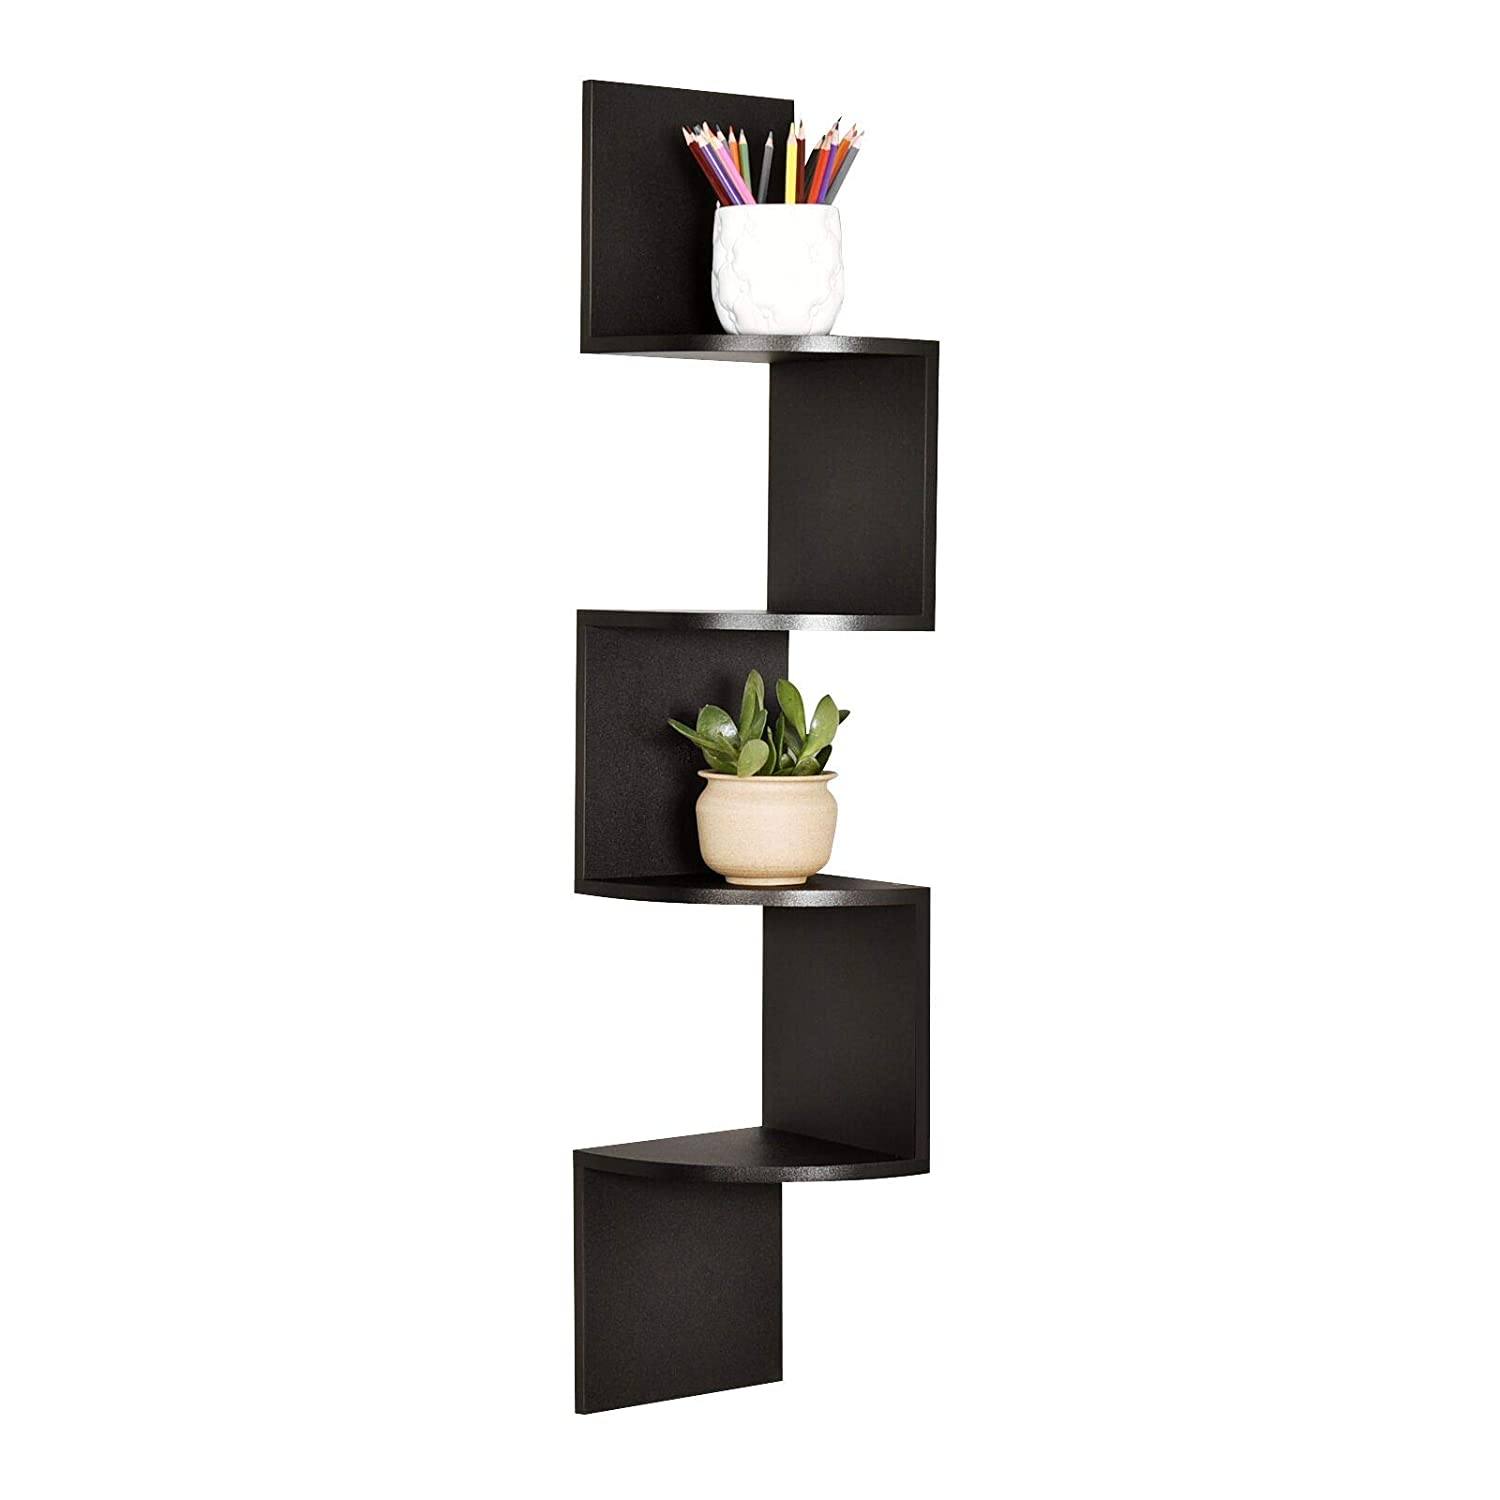 WELLAND Zig Zag 4 Tiers Corner Wall Shelf, Black